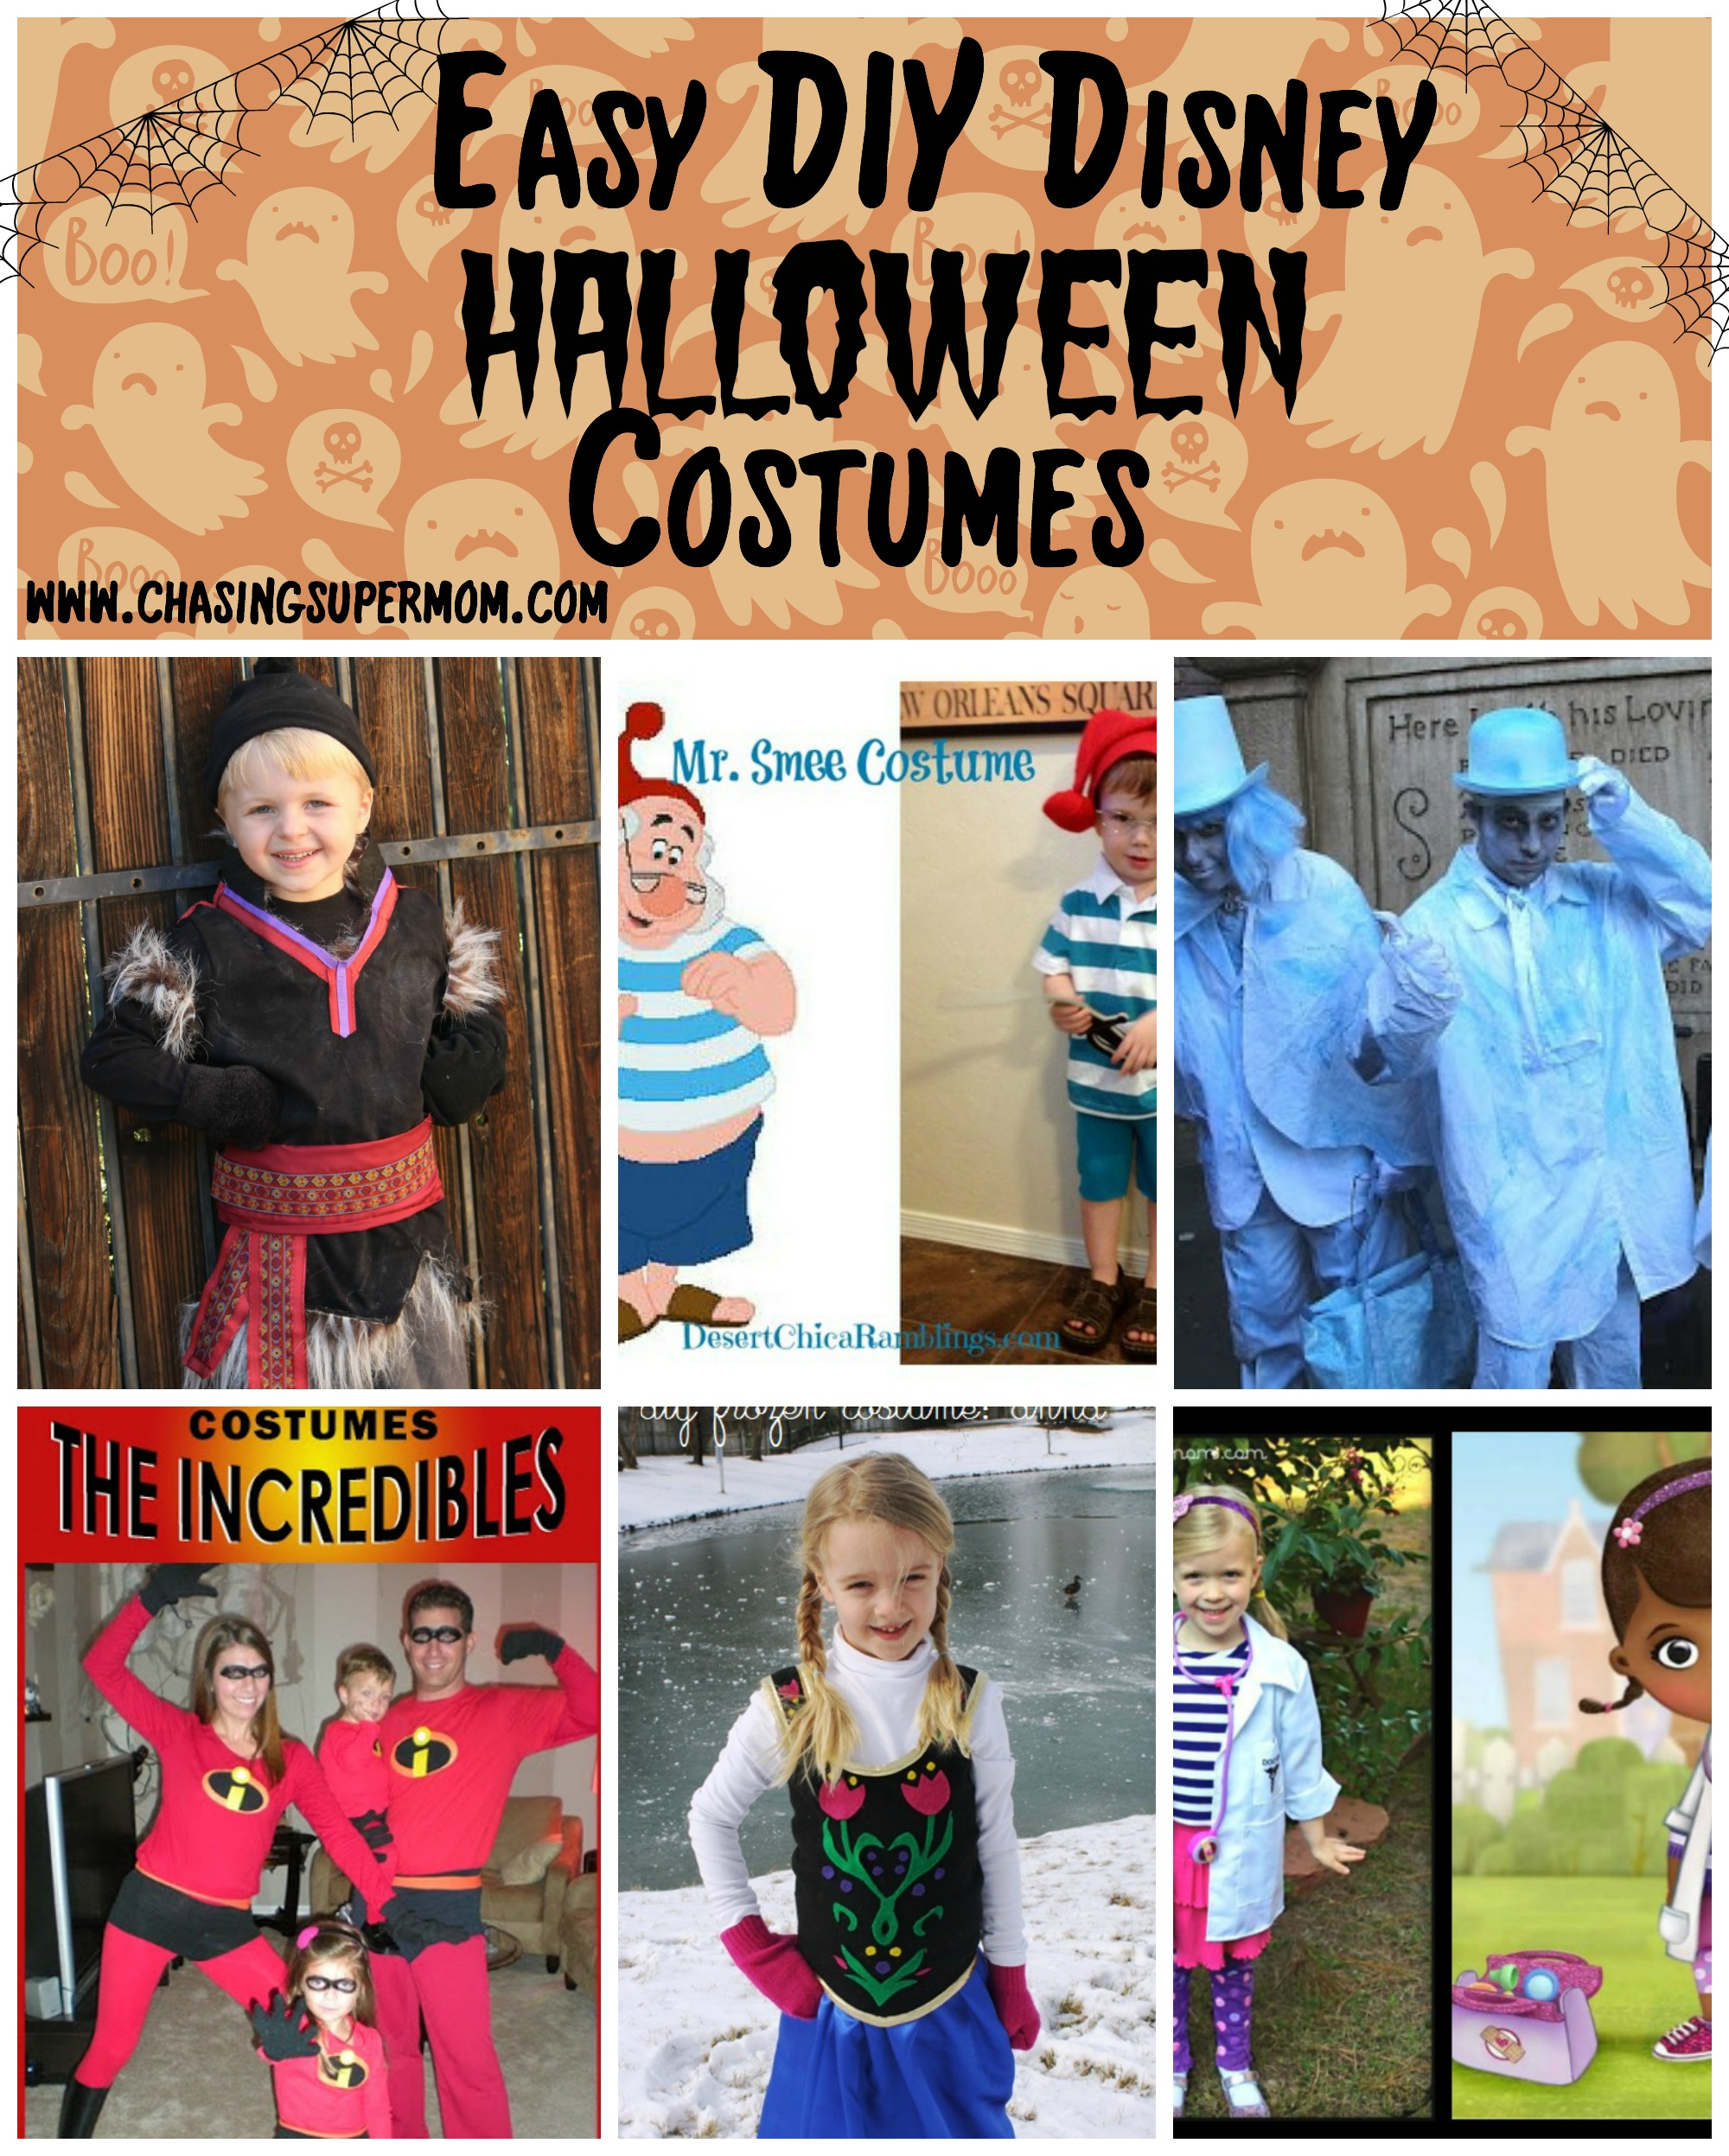 Diy disney halloween costume round up easy diy disney costumes diy disney halloween costume round up easy diy disney costumes solutioingenieria Gallery